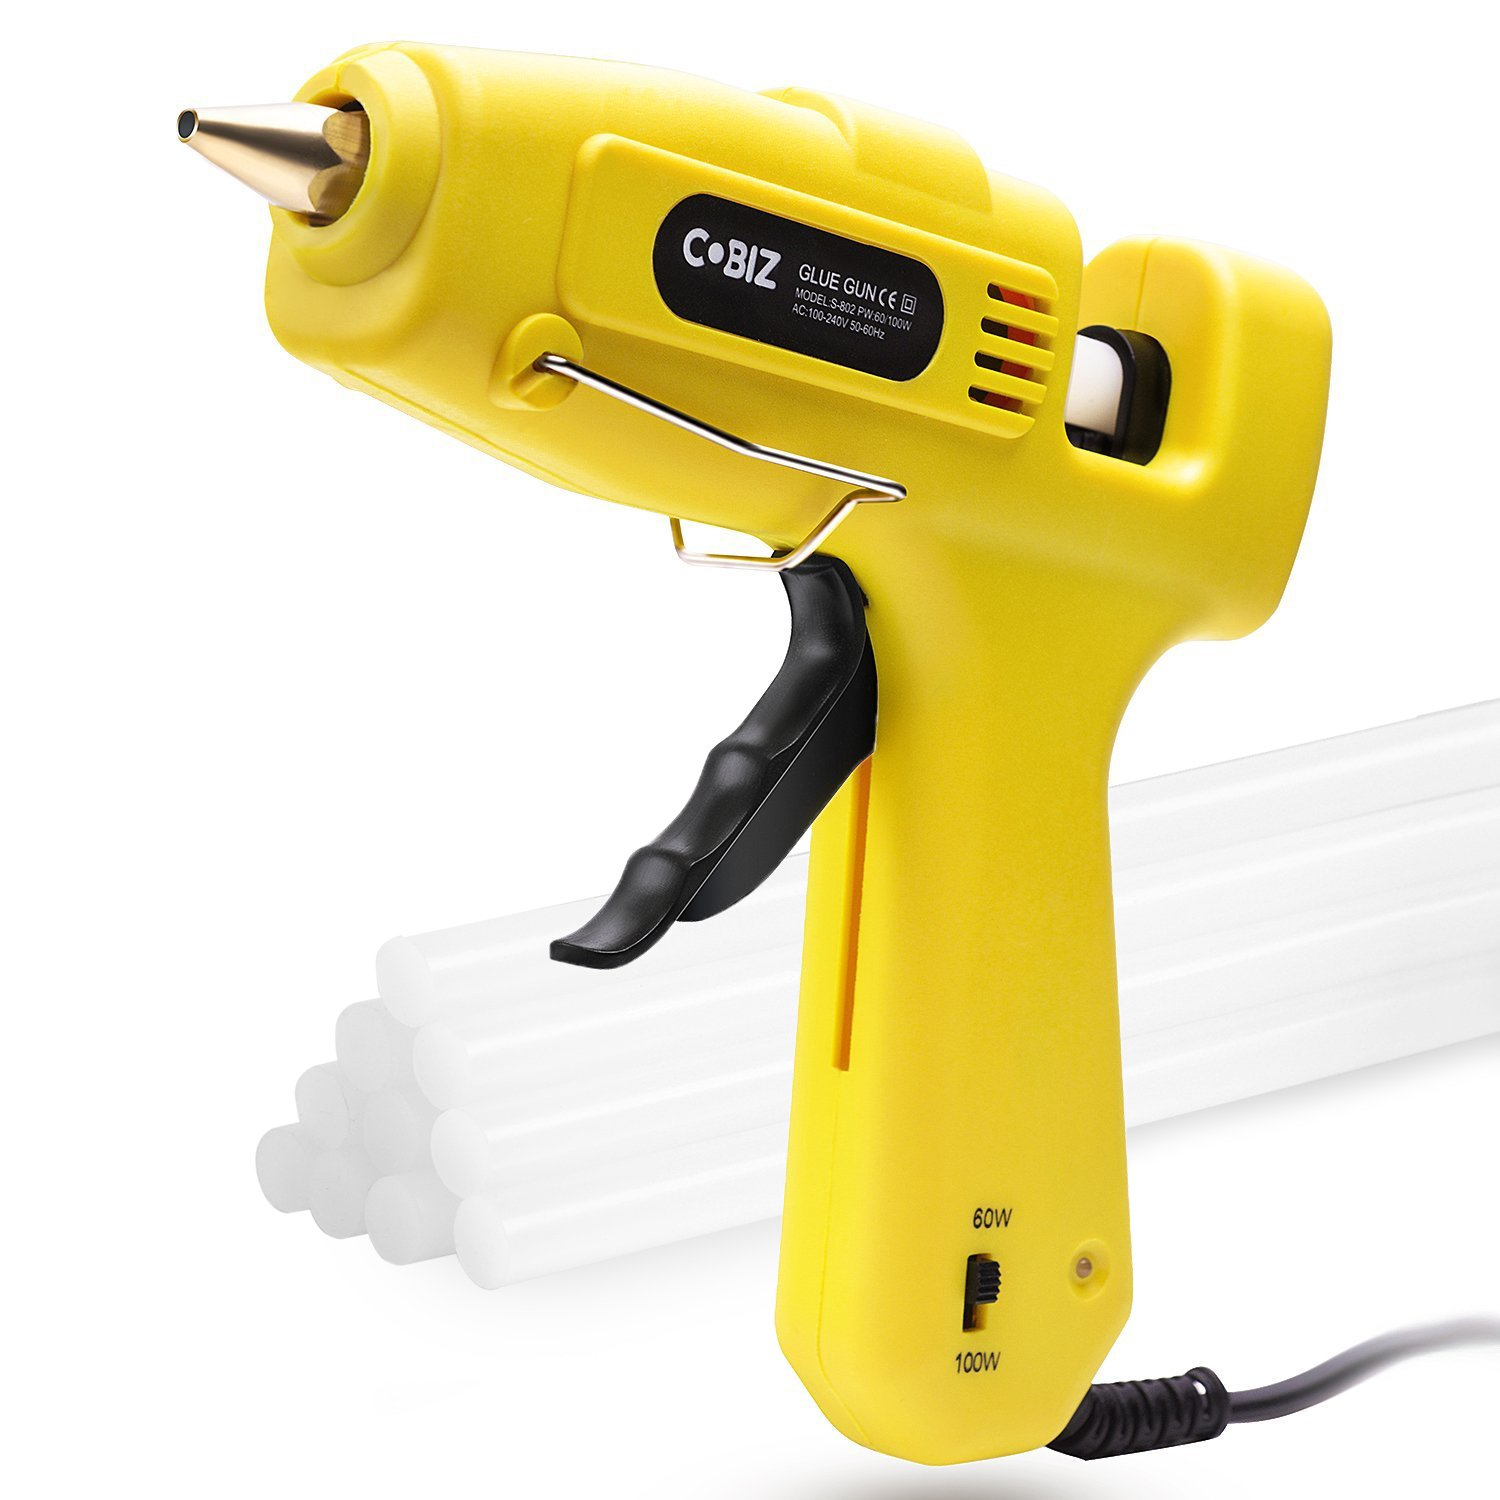 Hot Glue Gun, Cobiz Full Size (Not Mini) 60/100W Dual Power High Temp Heavy Duty Melt Glue Gun Kit with 10 Pcs Premium Glue Sticks(0.43'' x 8 ) for Arts & Crafts Use,Christmas Decoration /Gifts KISENG CZGLUEGUN001